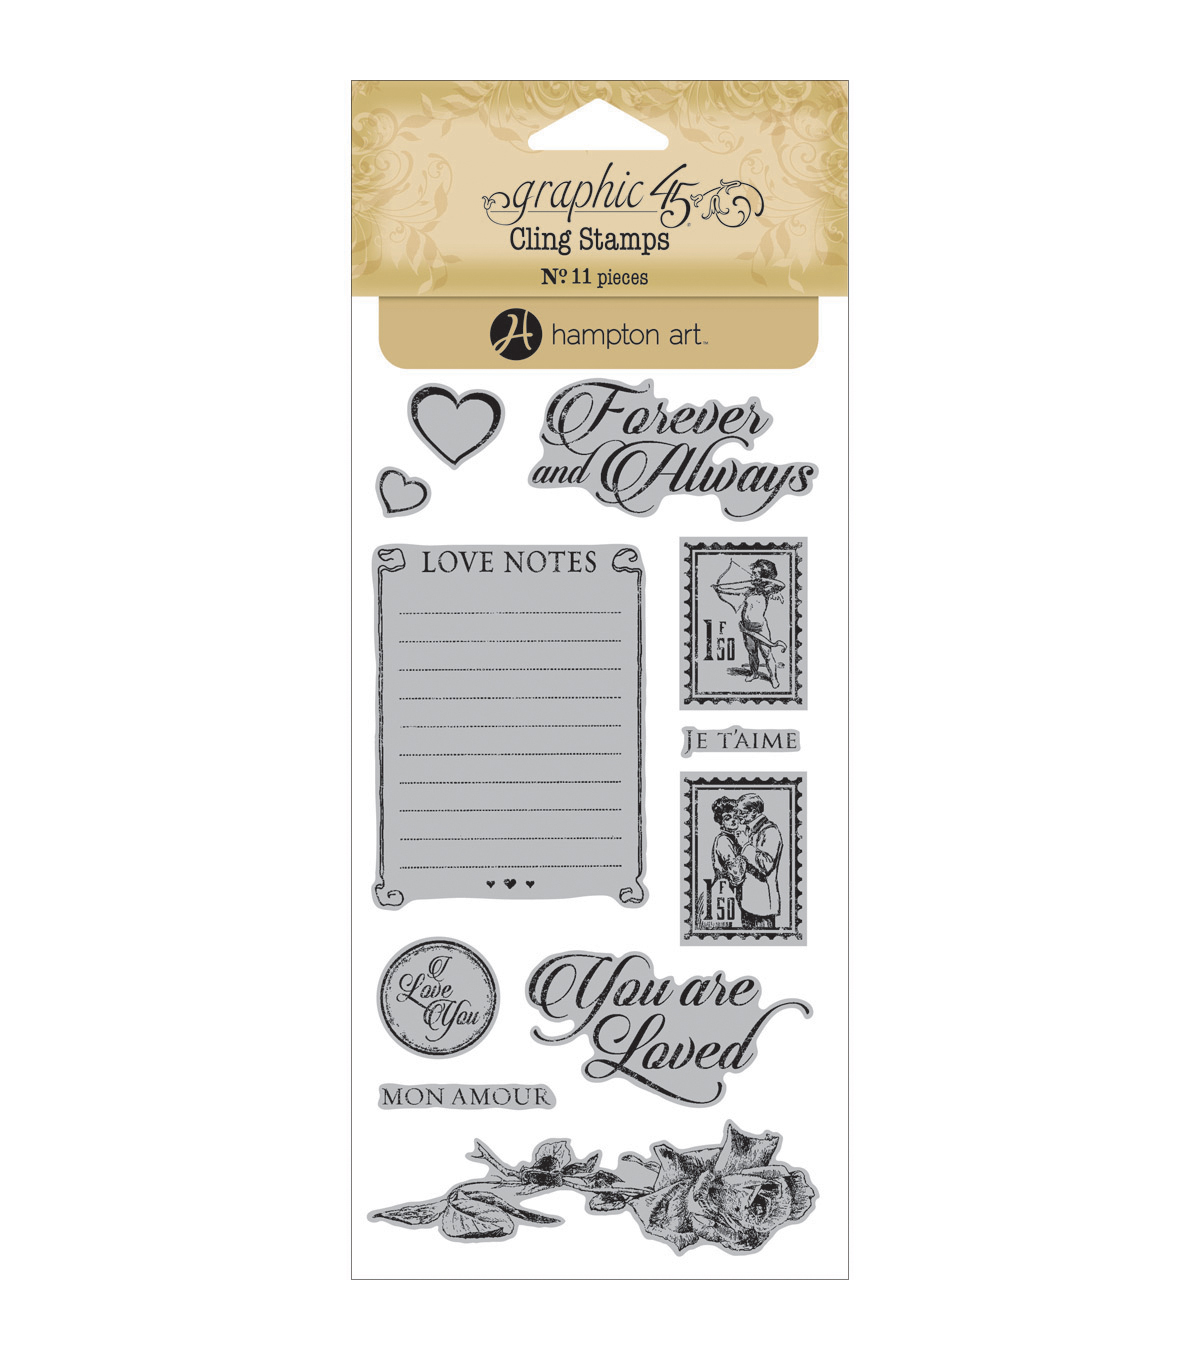 Graphic 45 Mon Amour Cling Stamps-#2